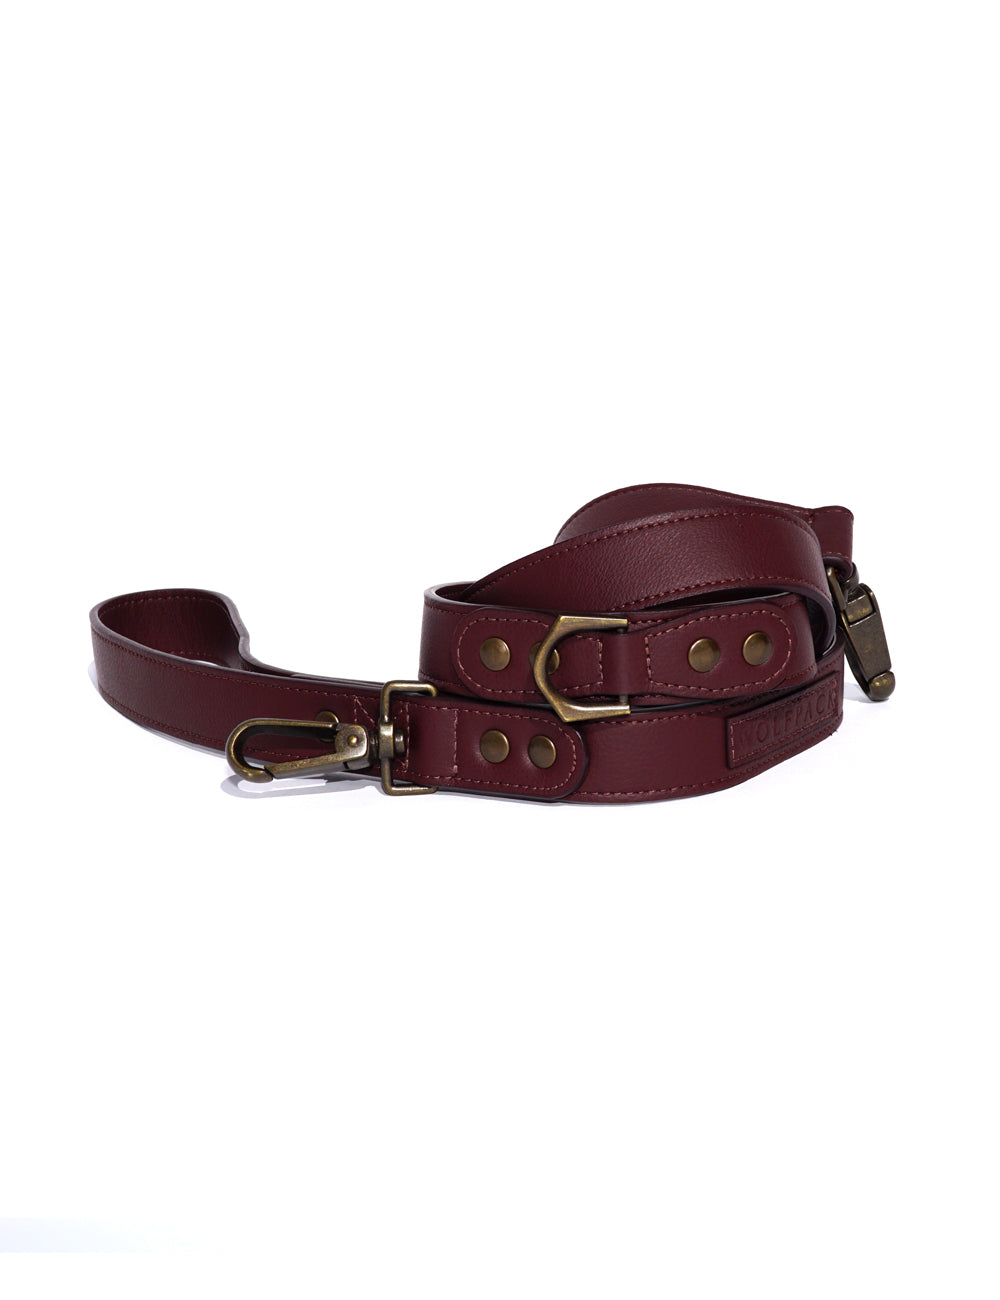 Latte Leather Leash | Oxblood